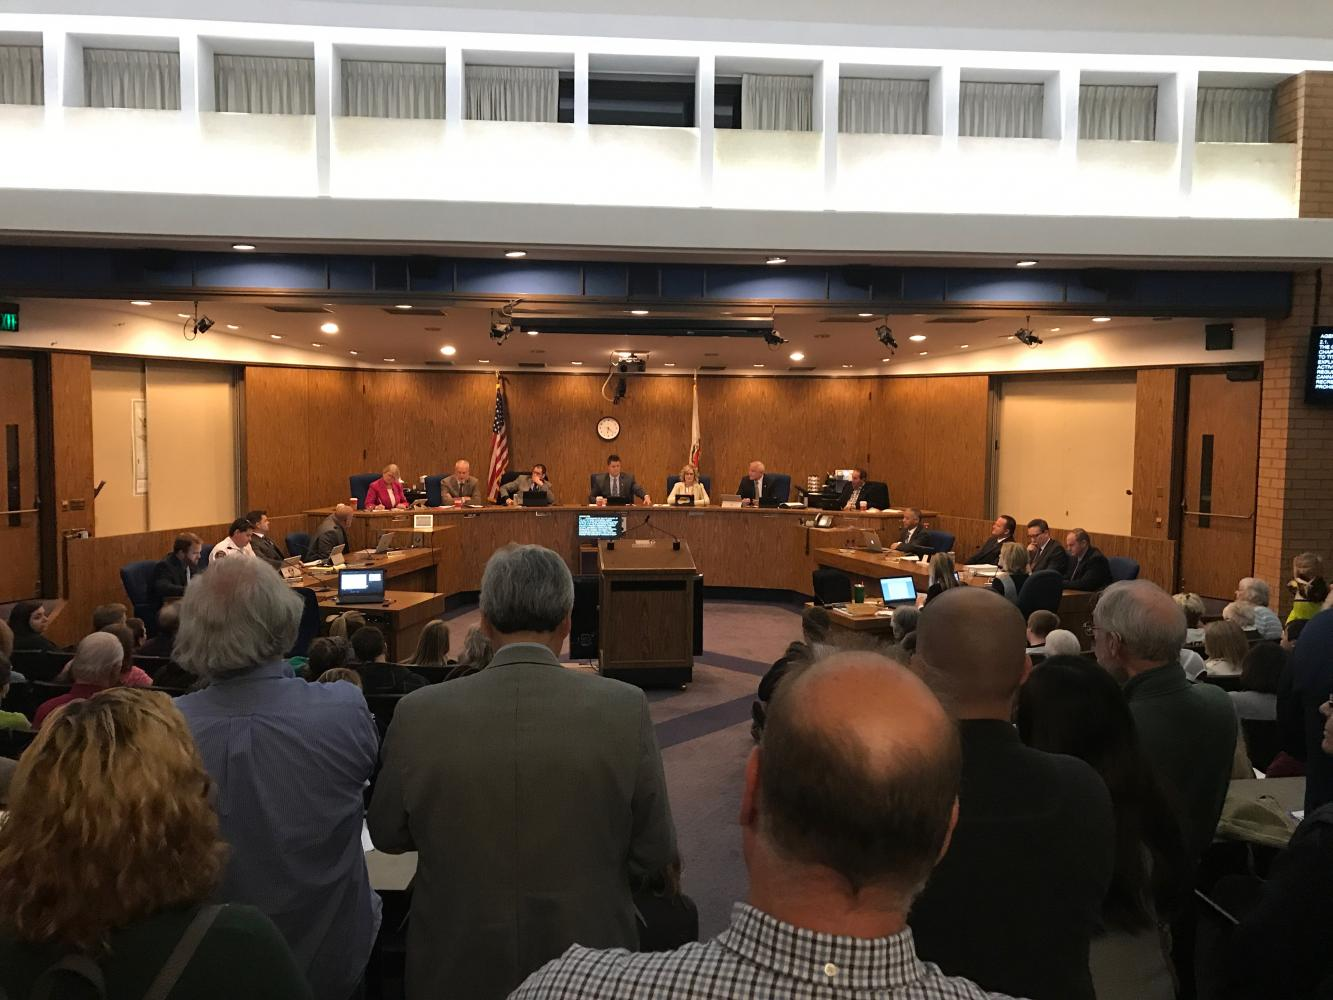 The council meeting discussed details on the sale of marijuana. Photo credit: Christian Solis